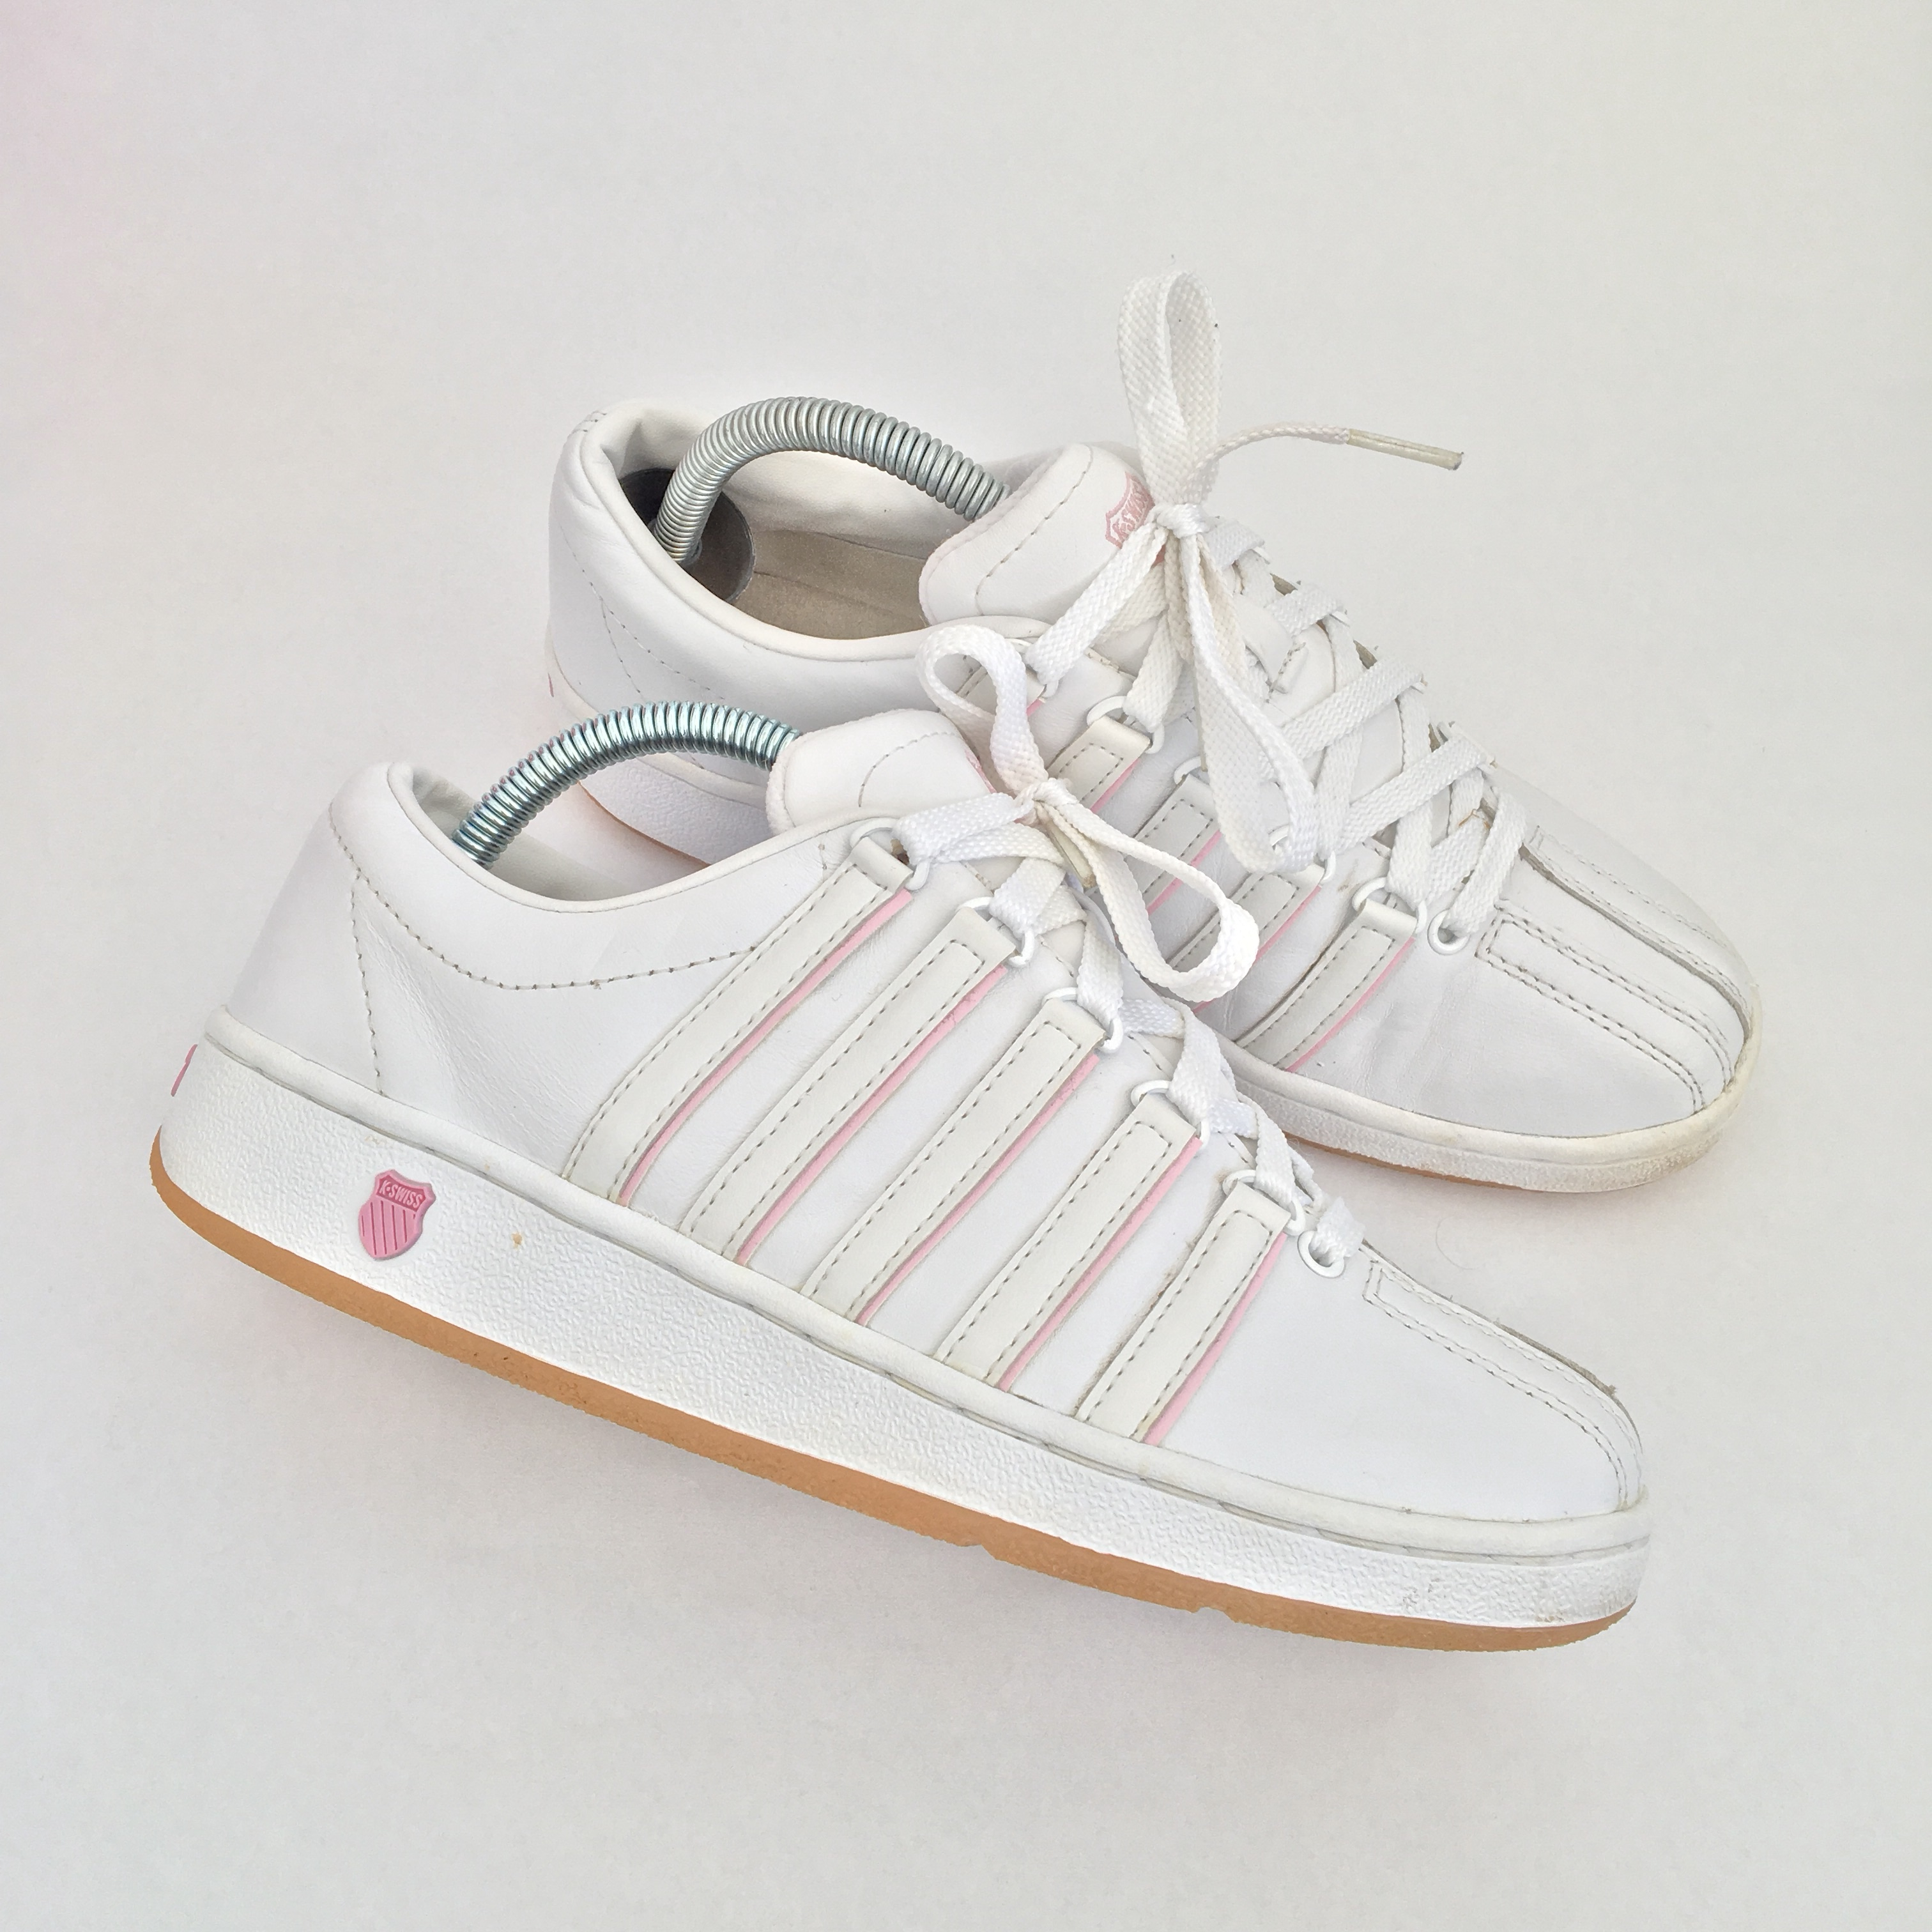 K-SWISS Classic 88 Trainers from 2005